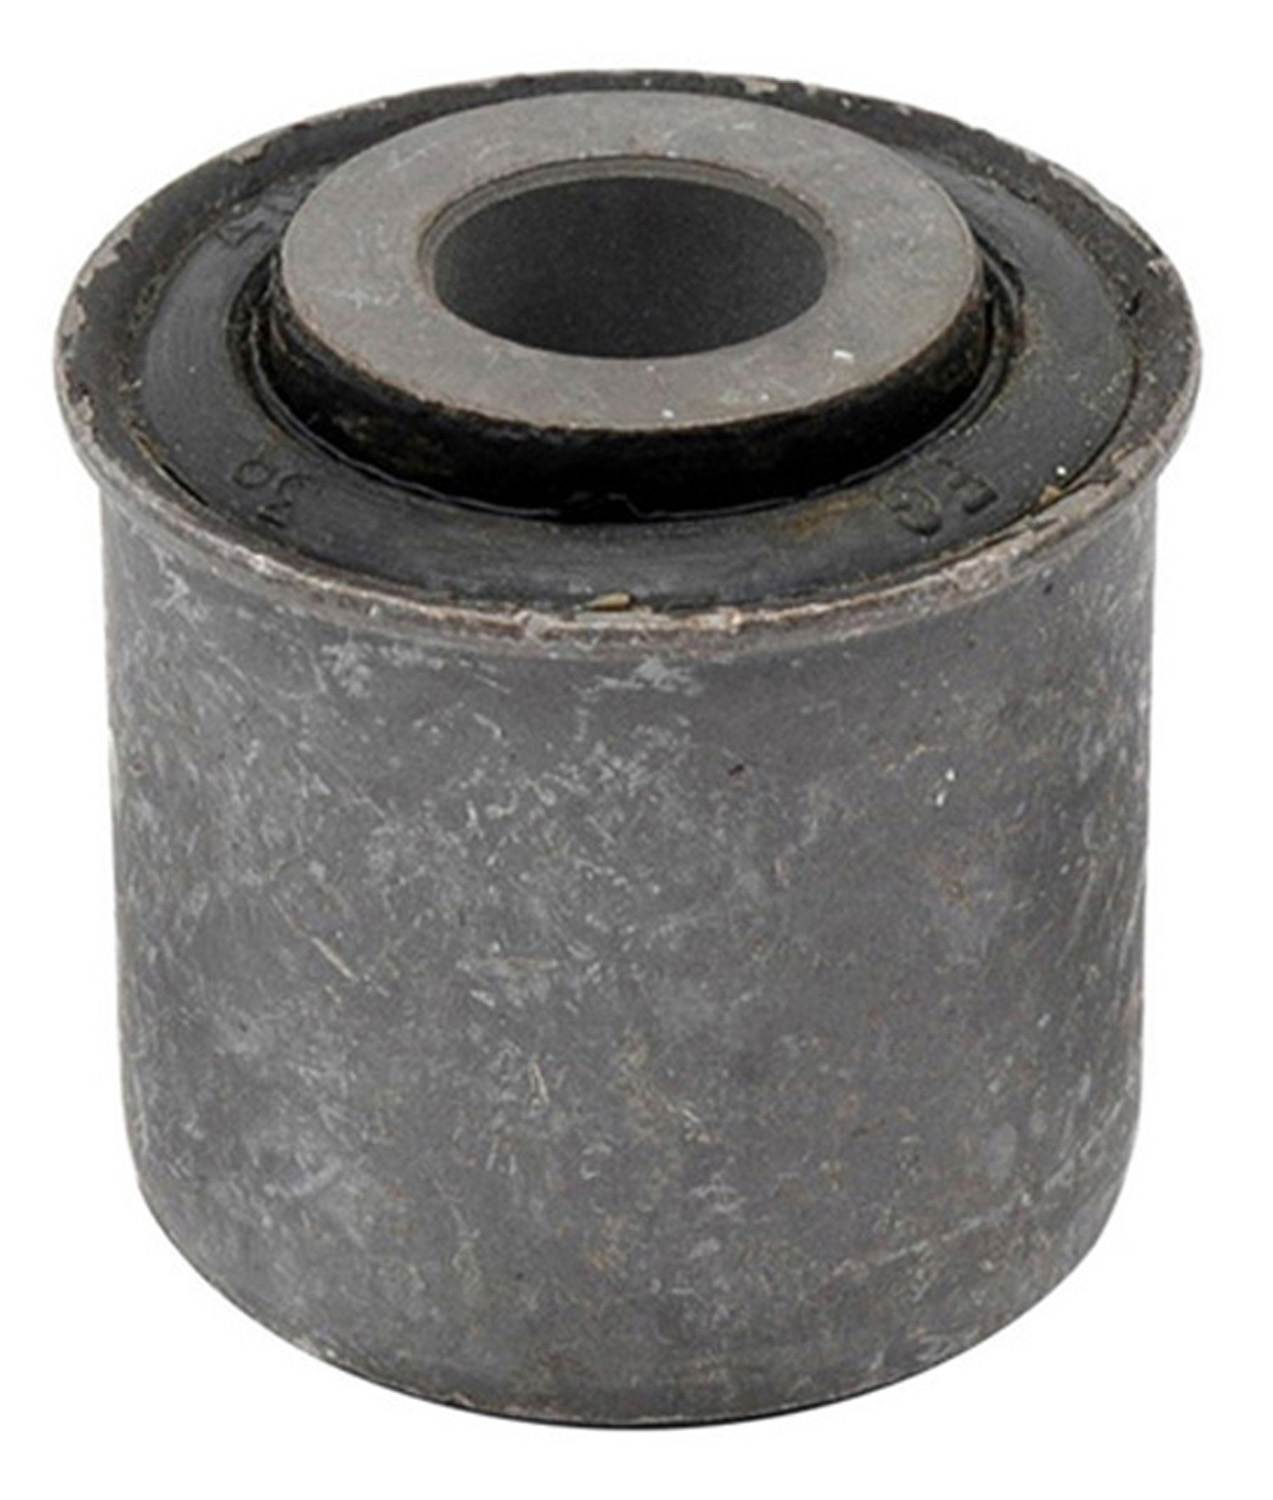 ACDELCO PROFESSIONAL - Suspension Track Bar Bushing - DCC 45G26025